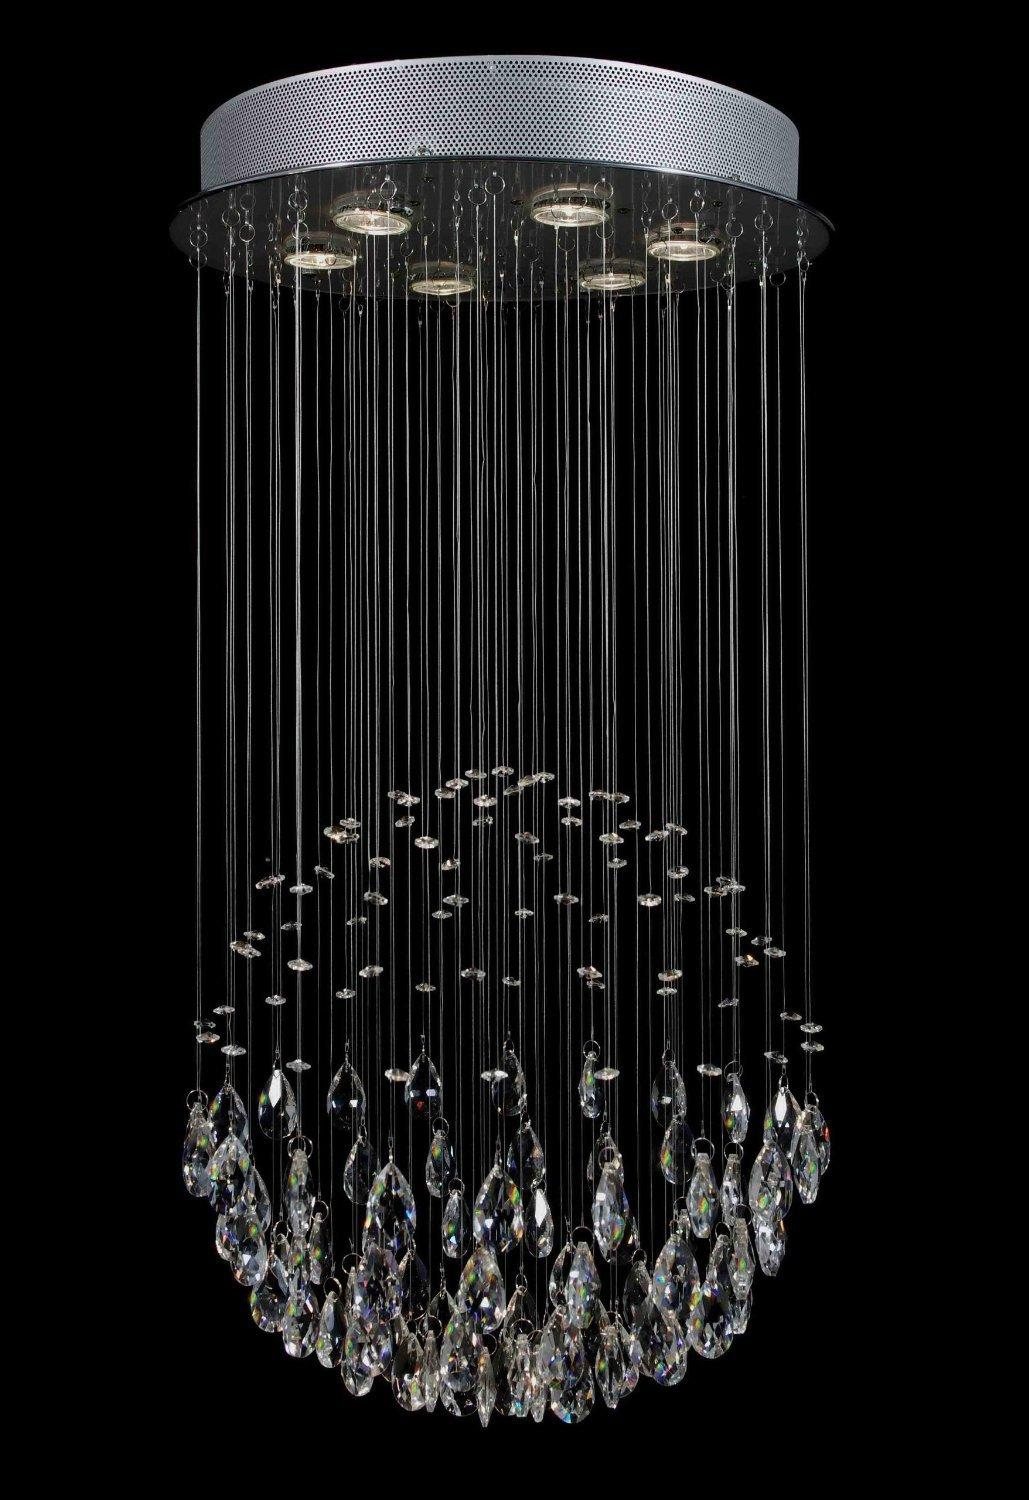 Modern *Rain Drop* Crystal Chandelier Lighting H32 x W18 Comes With Adjustable Hanging Kit Great for Vaulted Ceilings